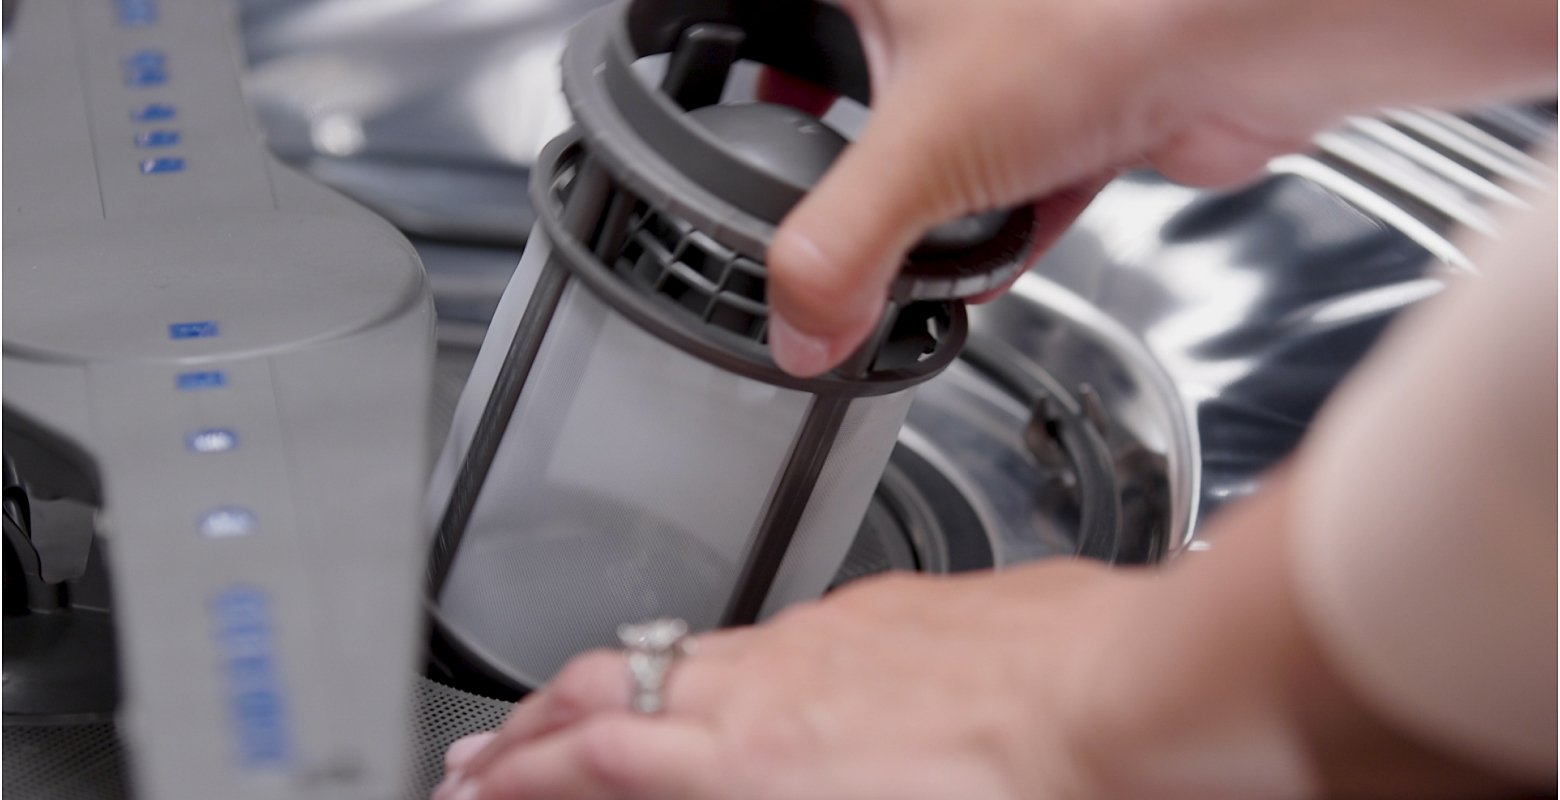 A person removing a filter from a dishwasher